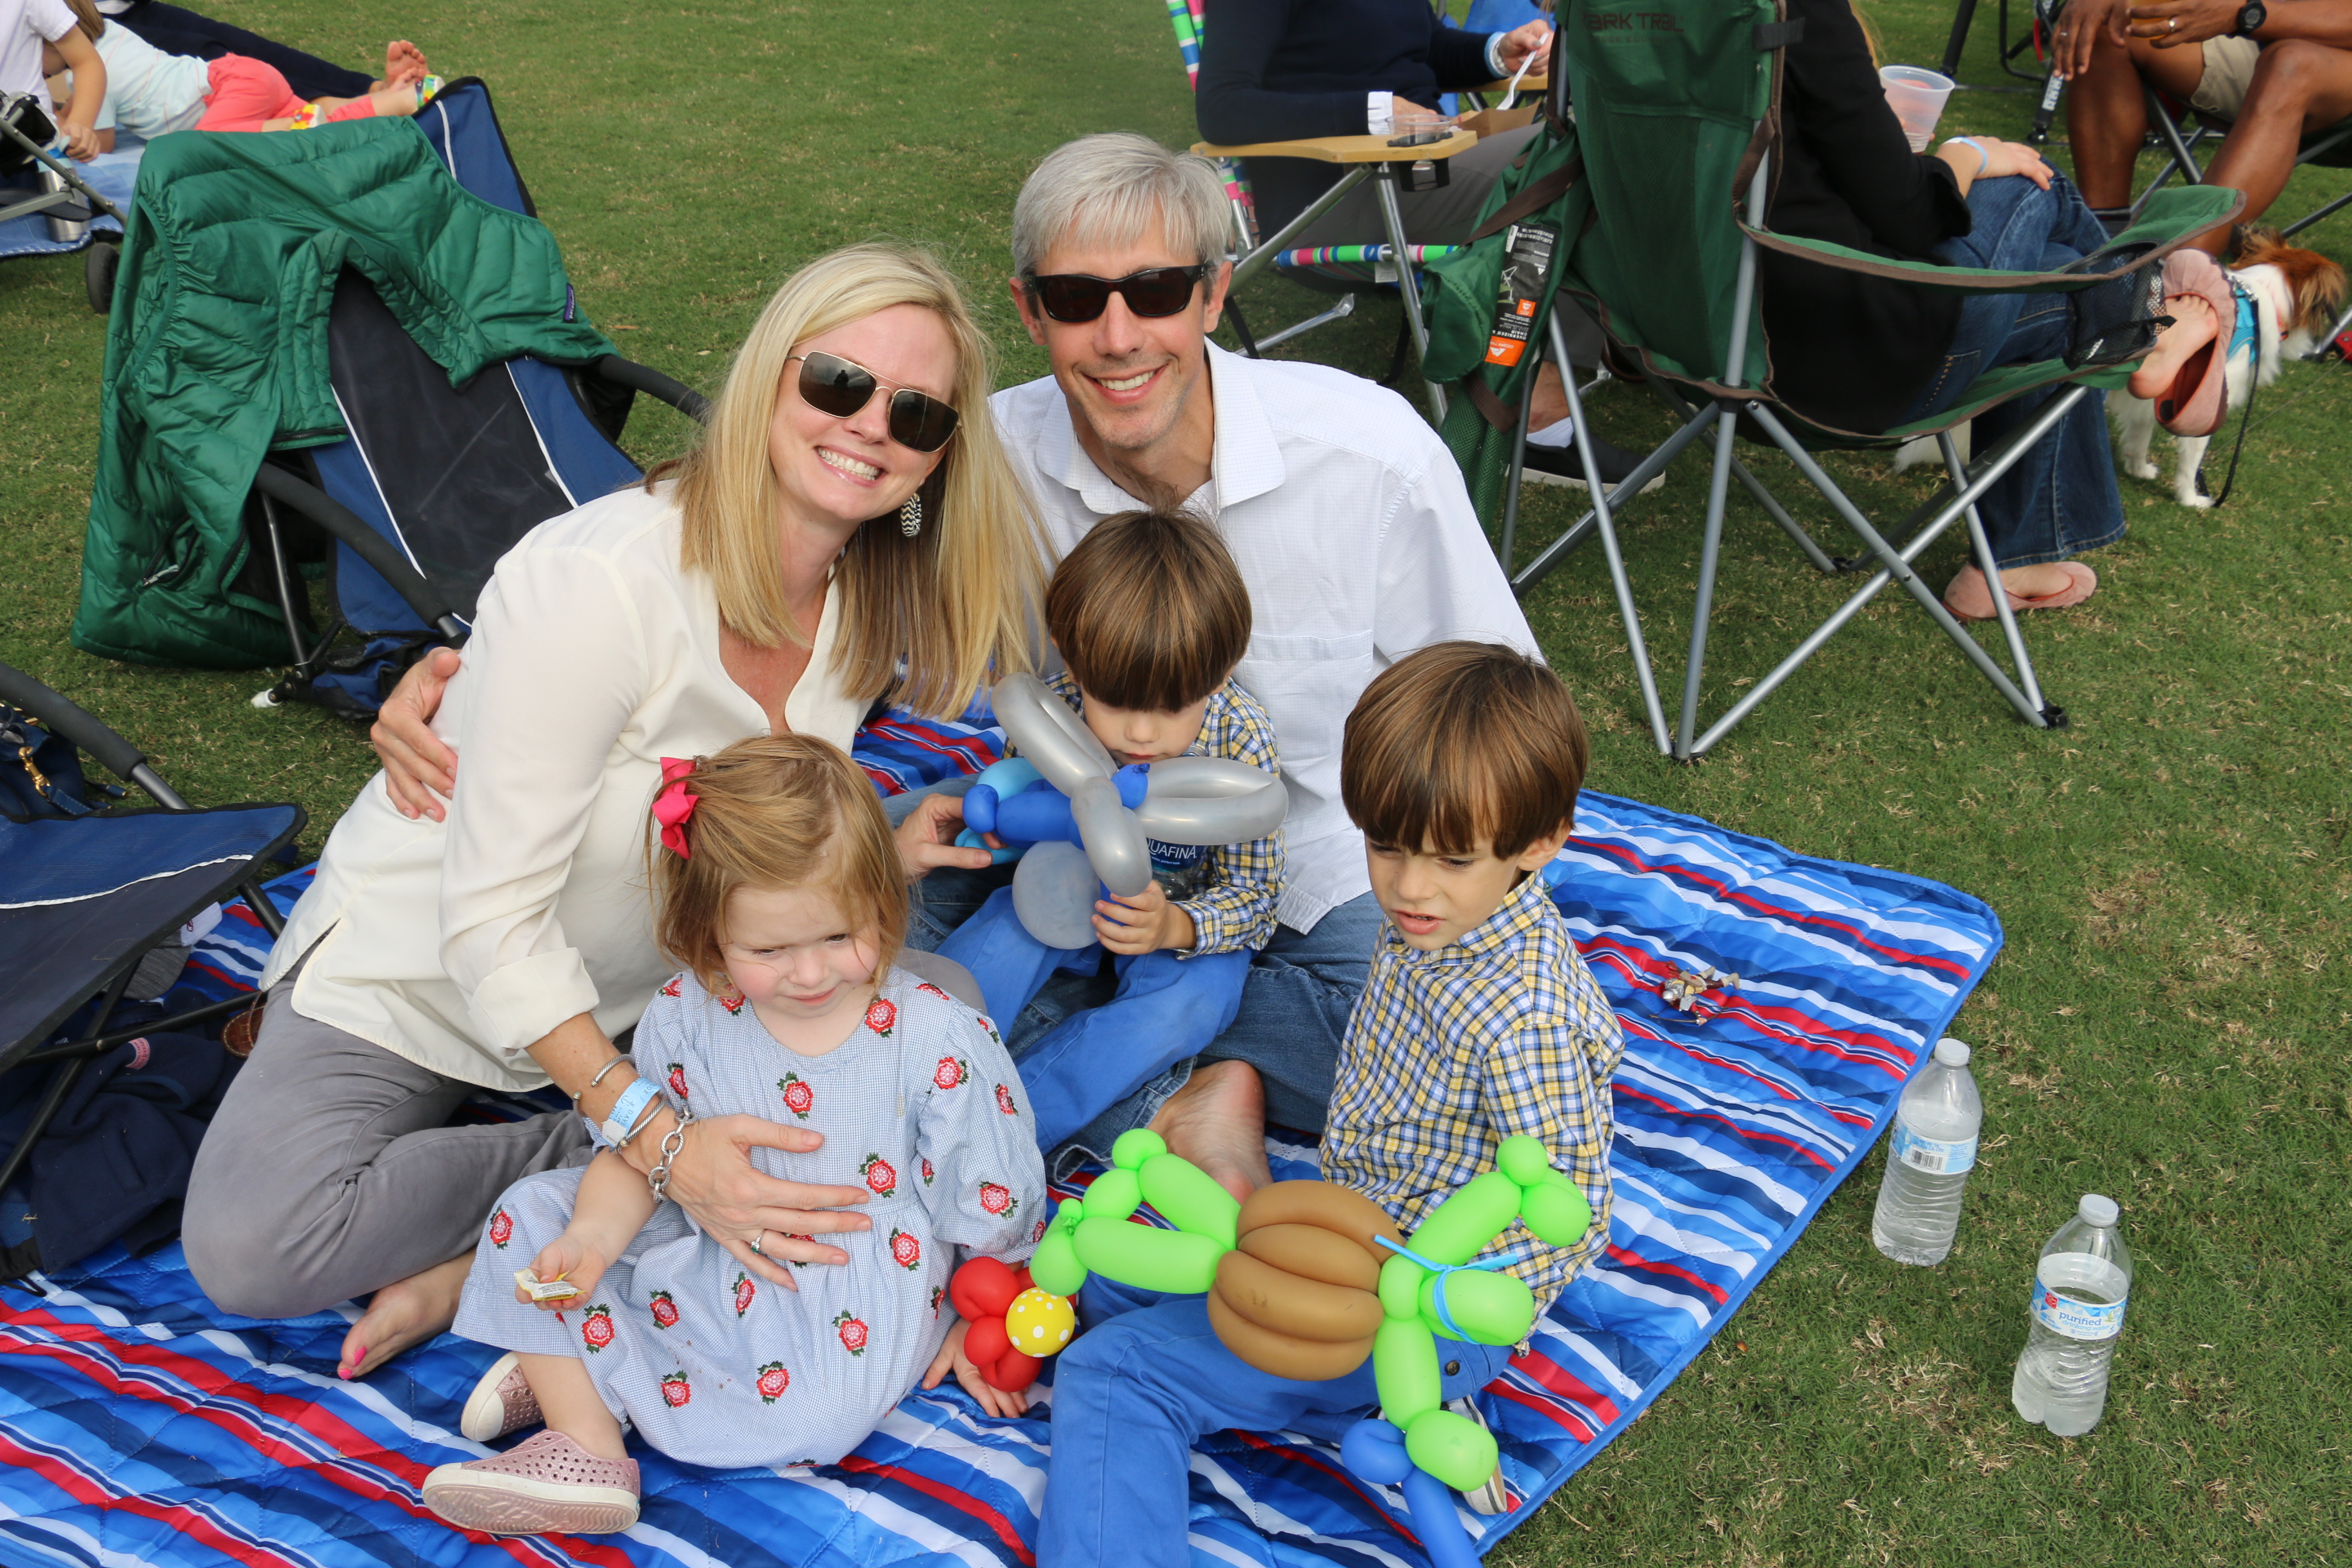 The Angelos family of Mount Pleasant took in the sights and sounds while sampling some of the tasty fare offered by the food trucks.